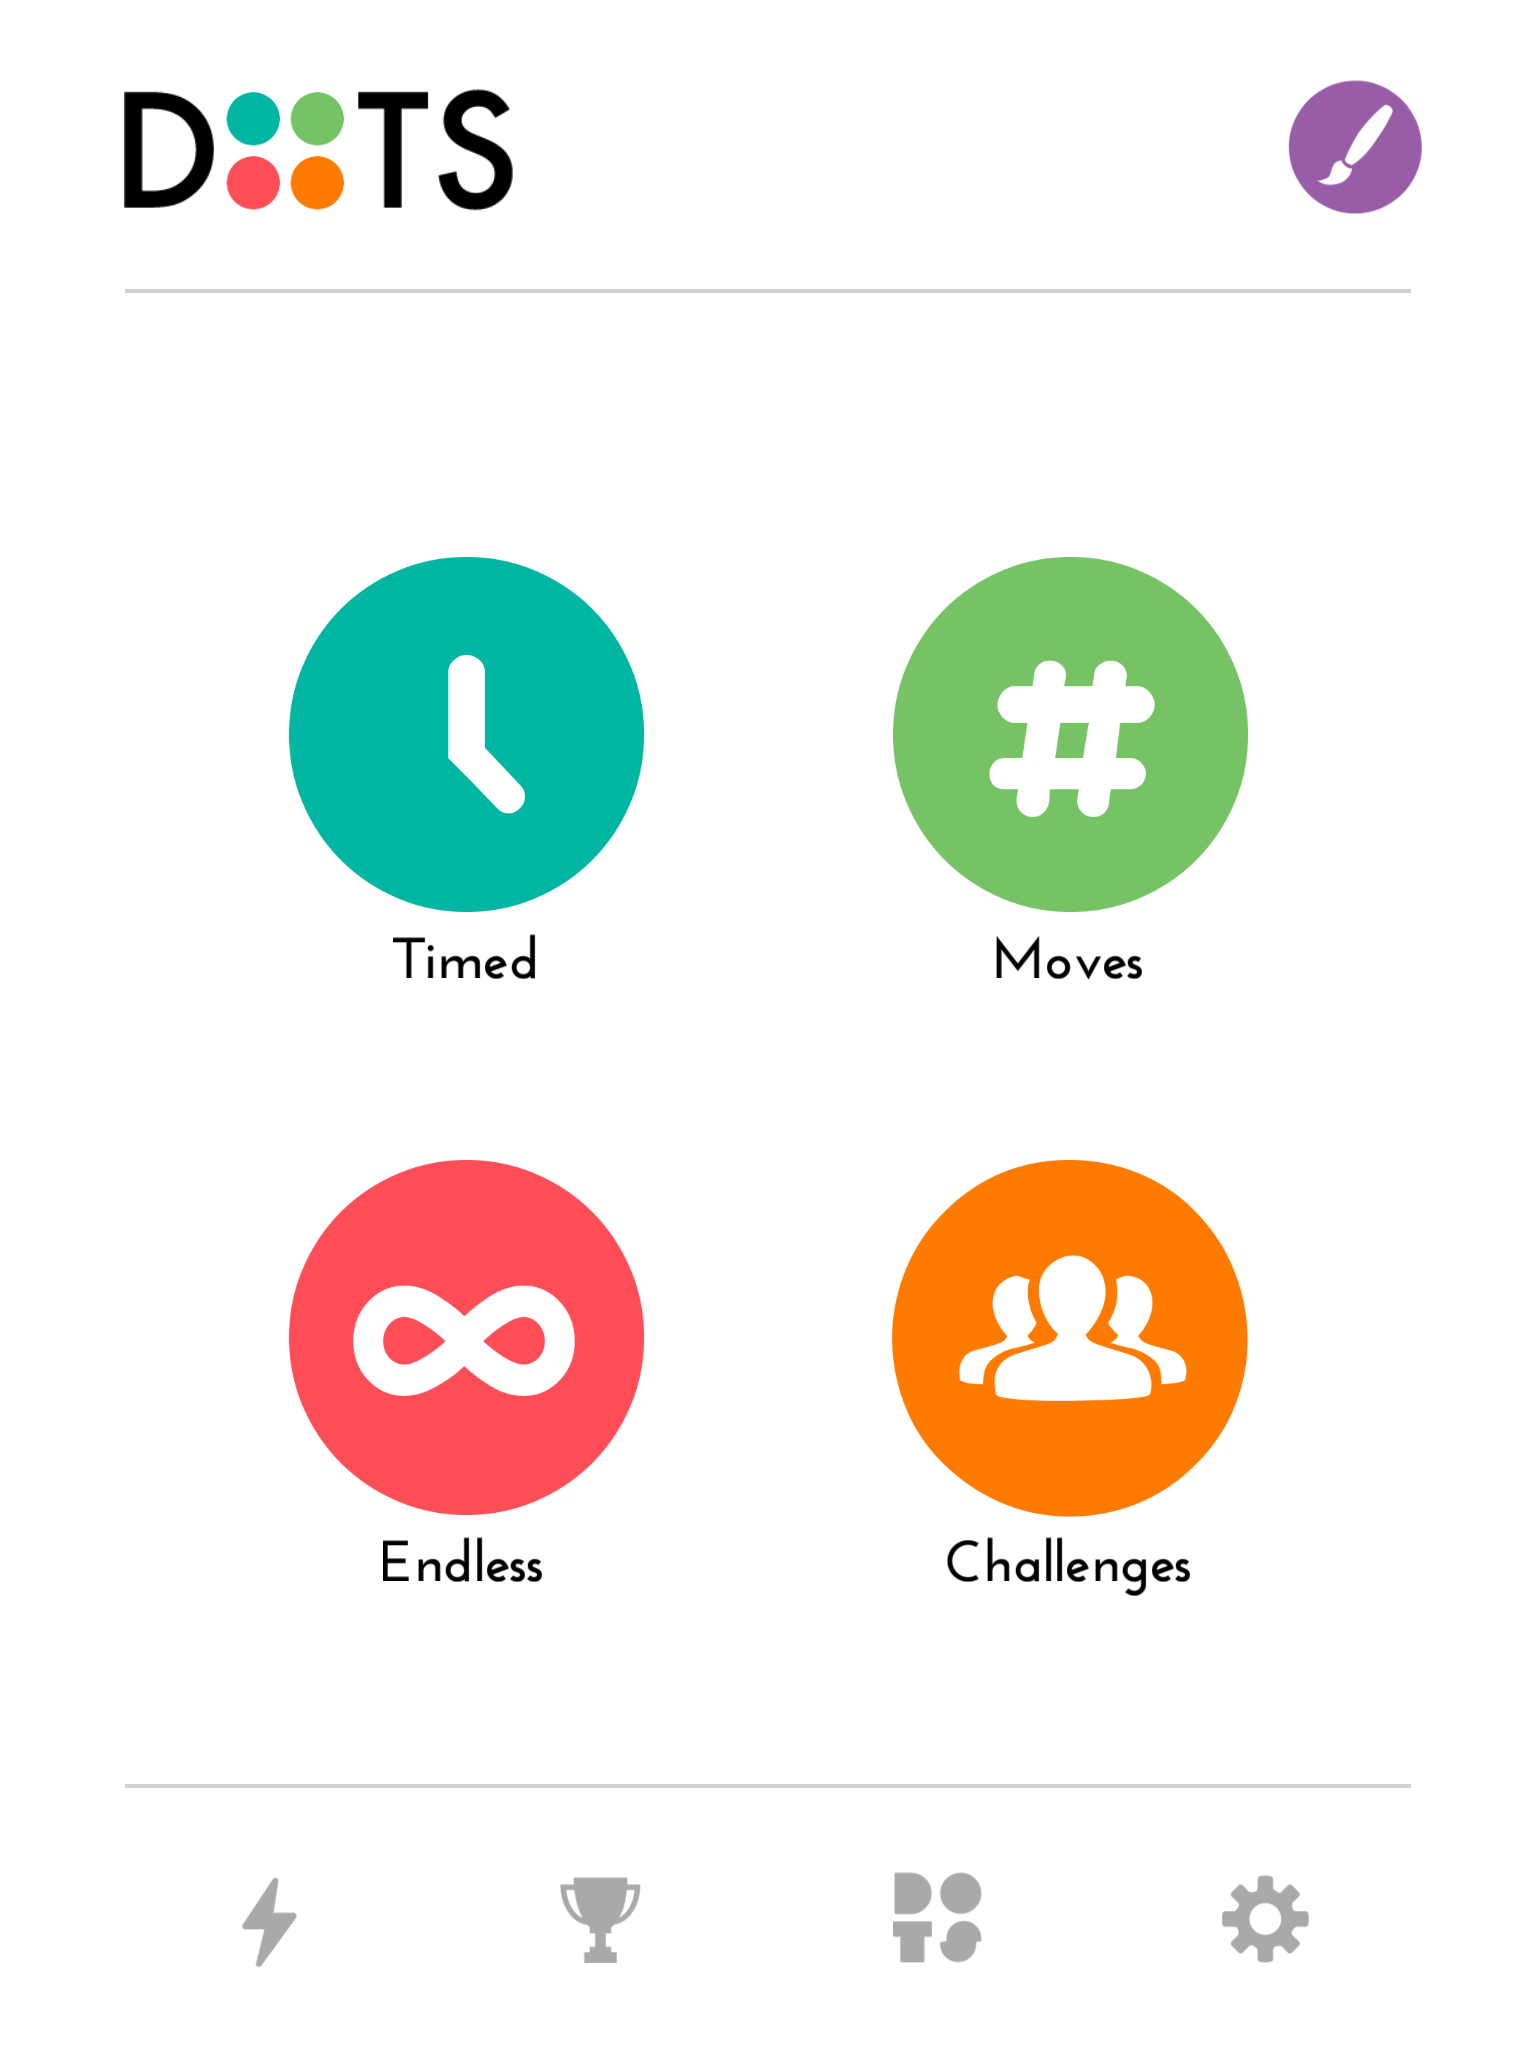 Dots: A Game About Connecting app launch screen